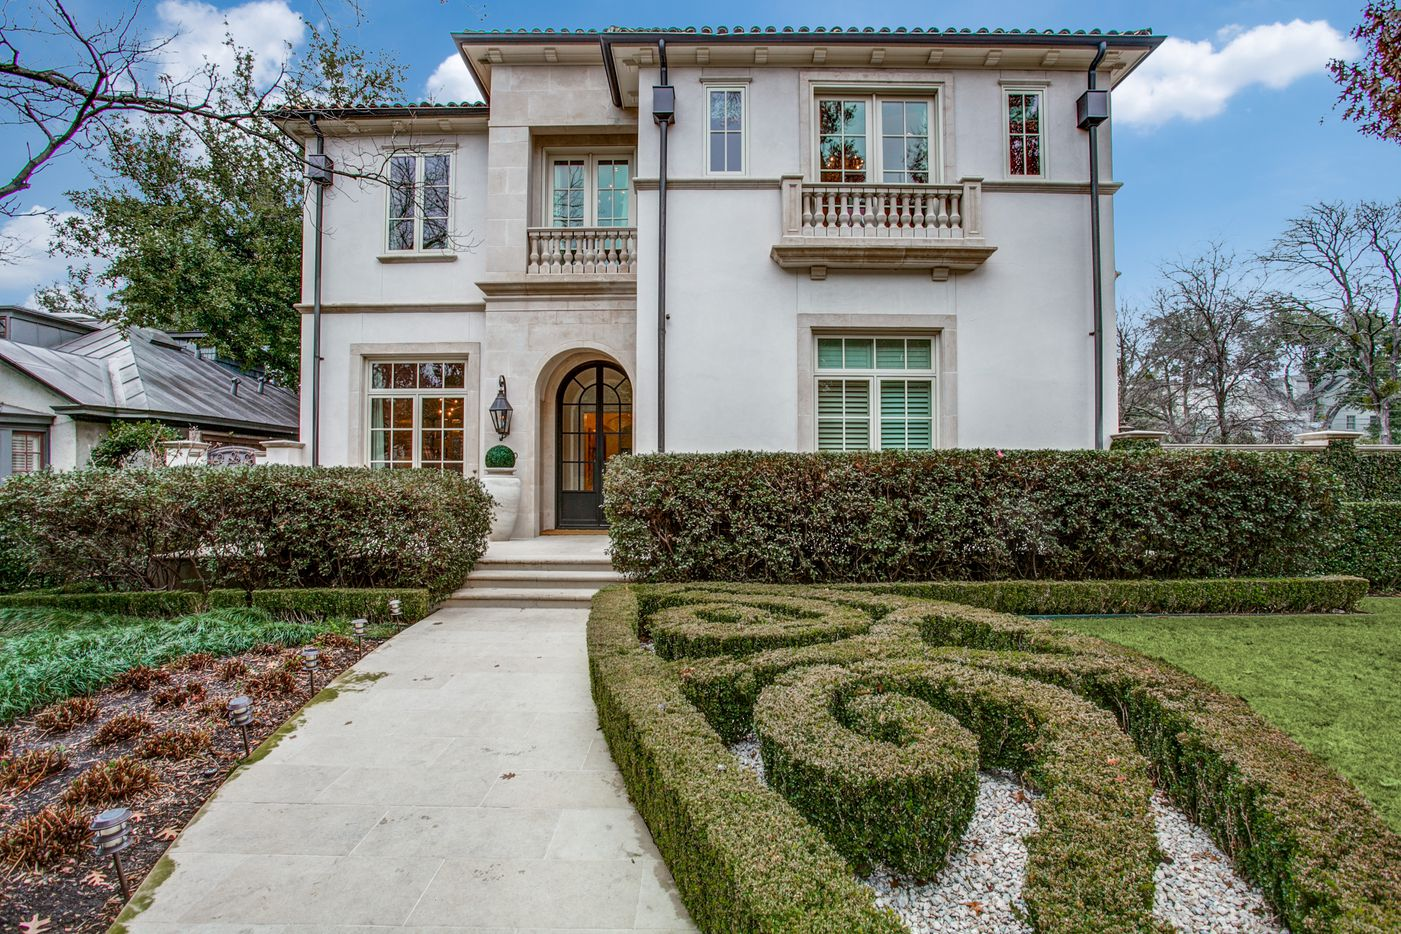 A look at the front of the Dallas home Kameron Westcott is selling.